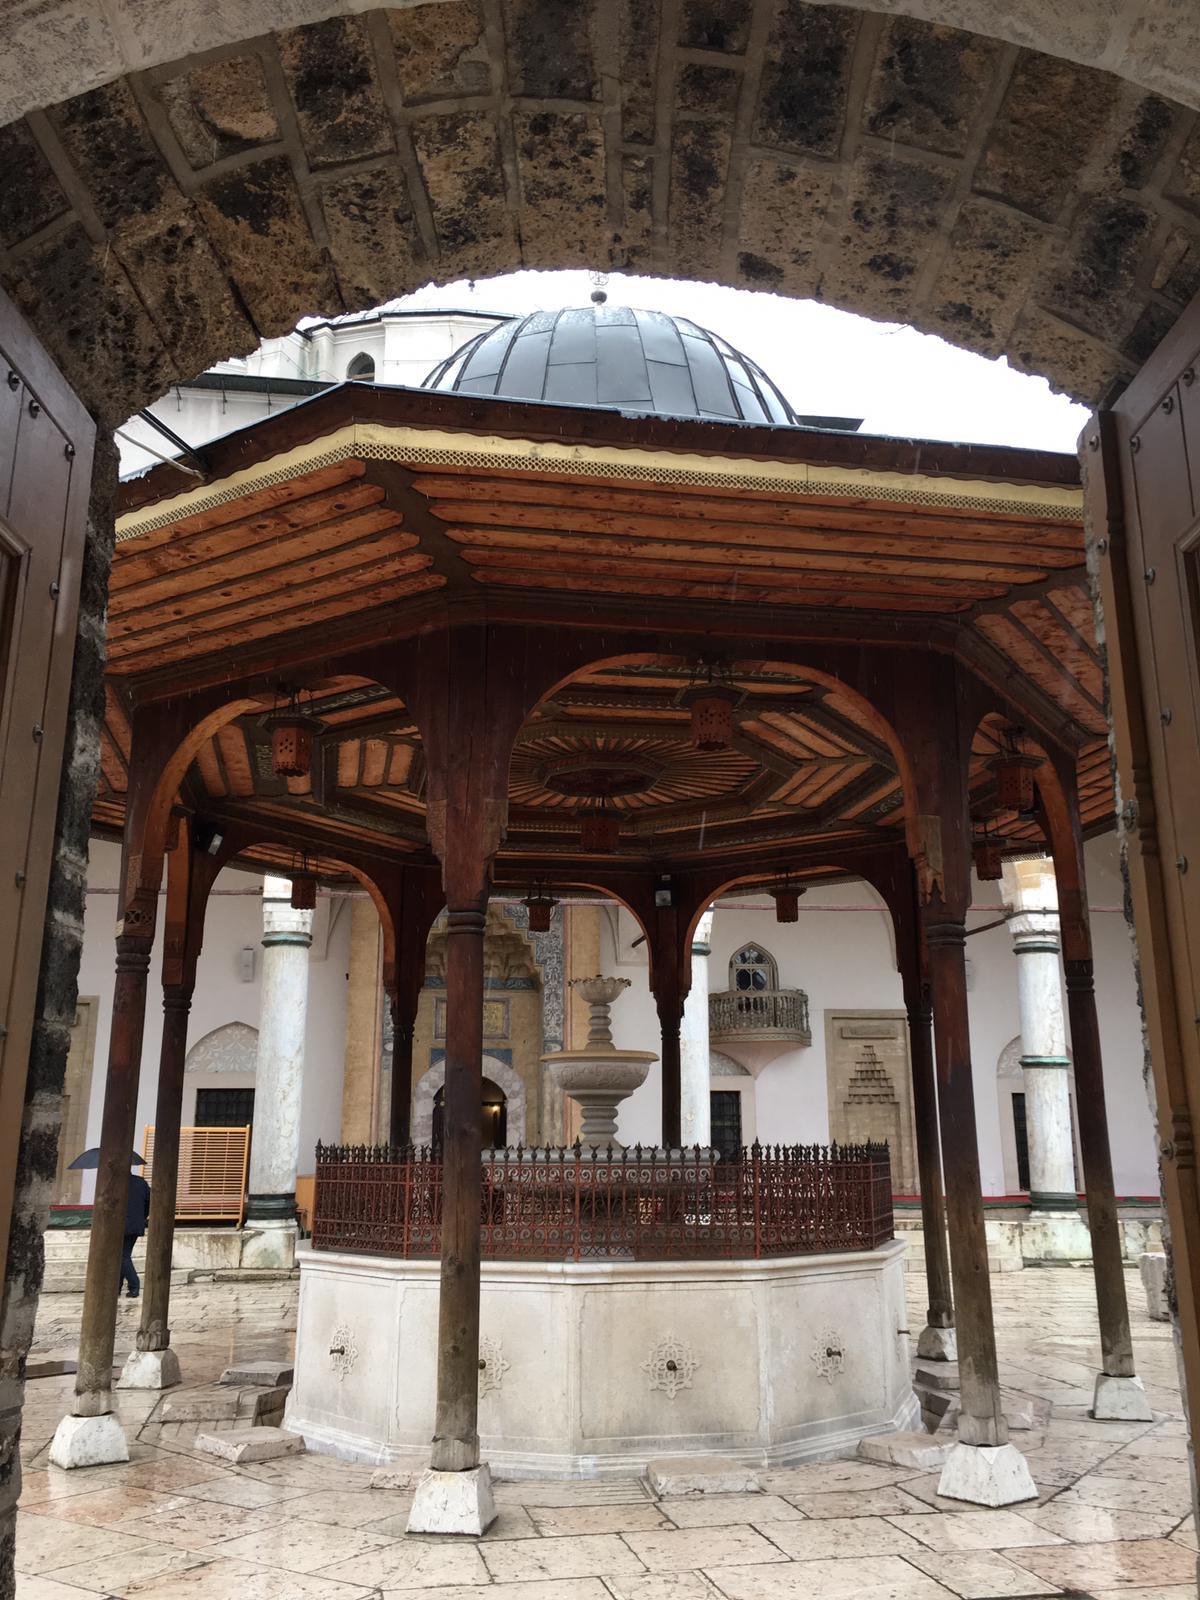 Photo of large structure with a domed roof. The supporting beams of the structure are made of wood with a fountain in the middle.